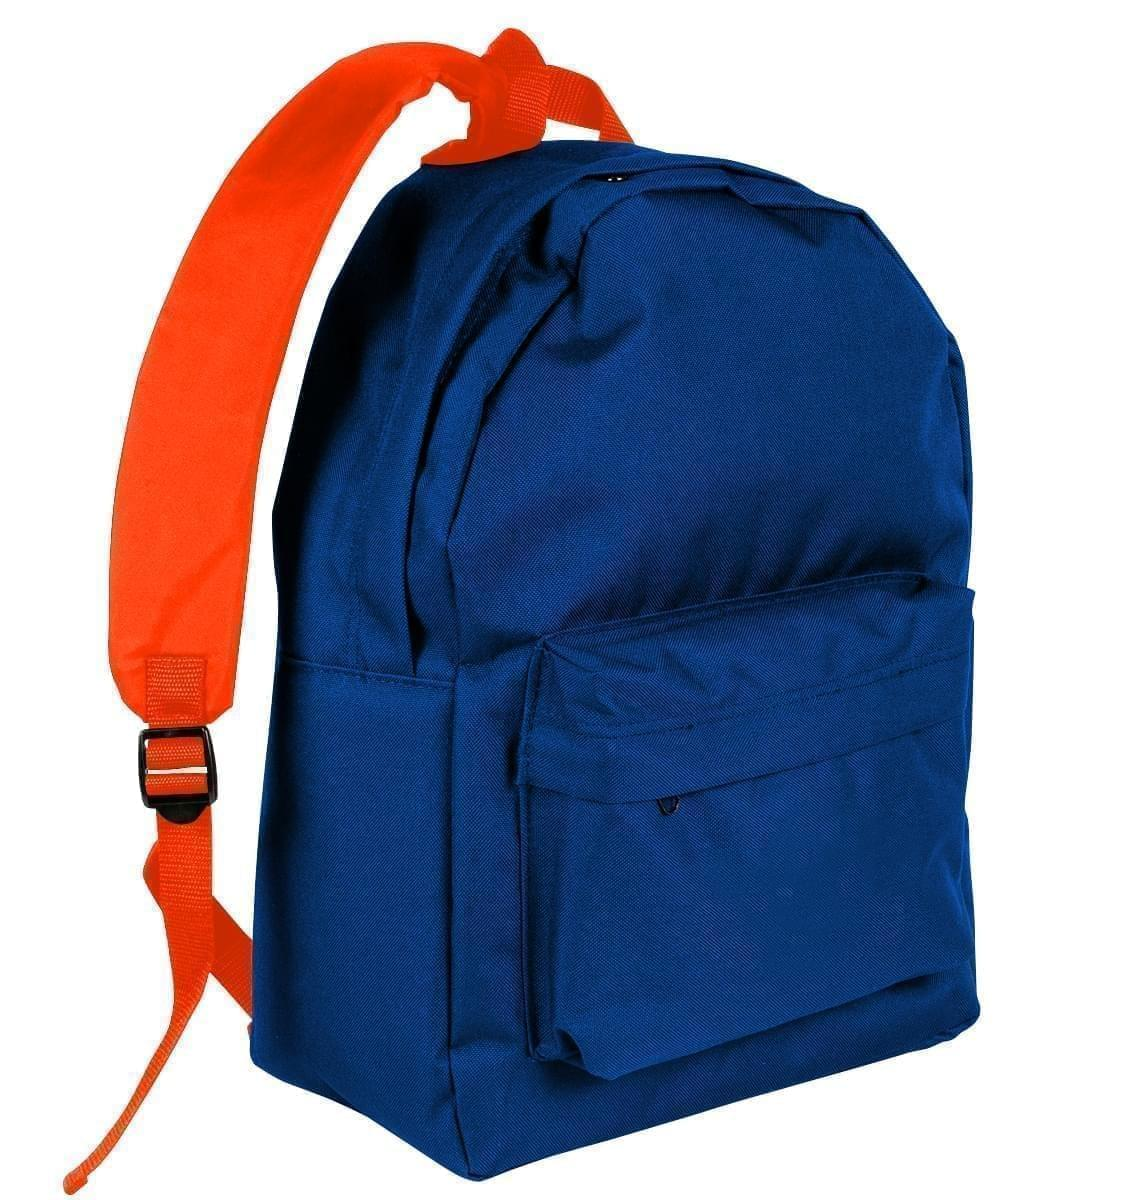 USA Made Nylon Poly Backpack Knapsacks, Royal Blue-Orange, 8960-A00